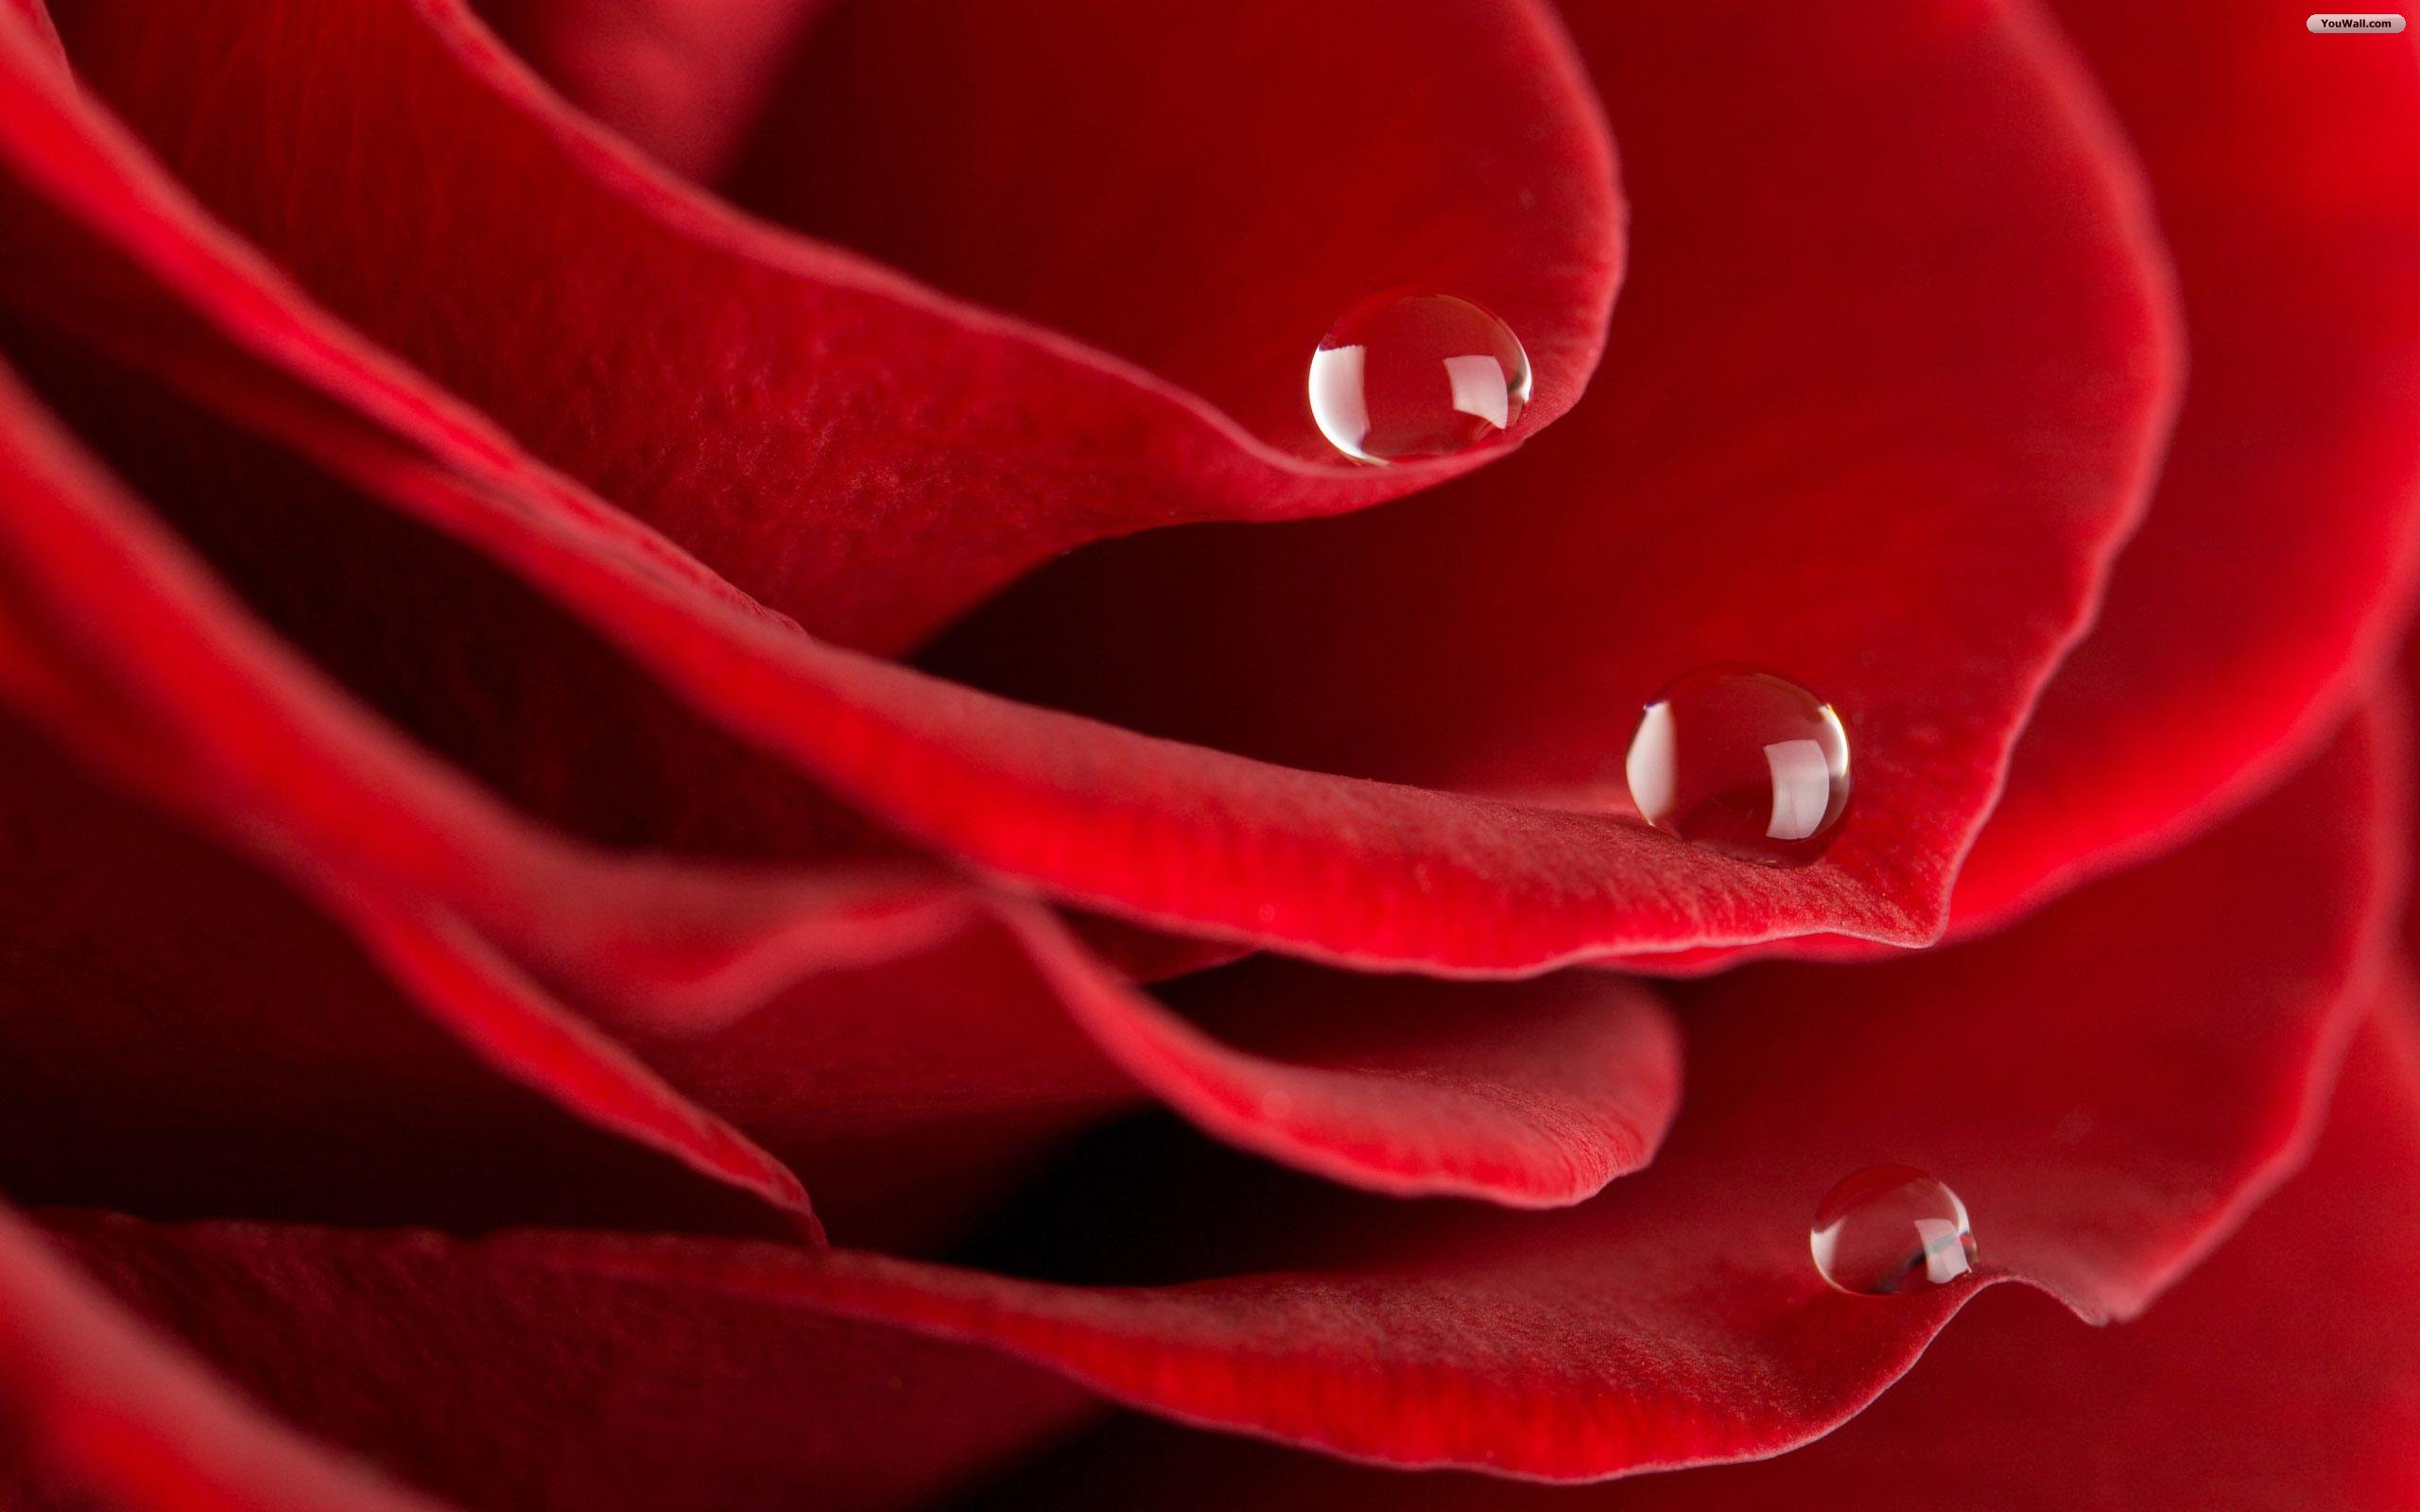 RED ROSES WALLPAPERS FREE Wallpapers Background images 2560x1600